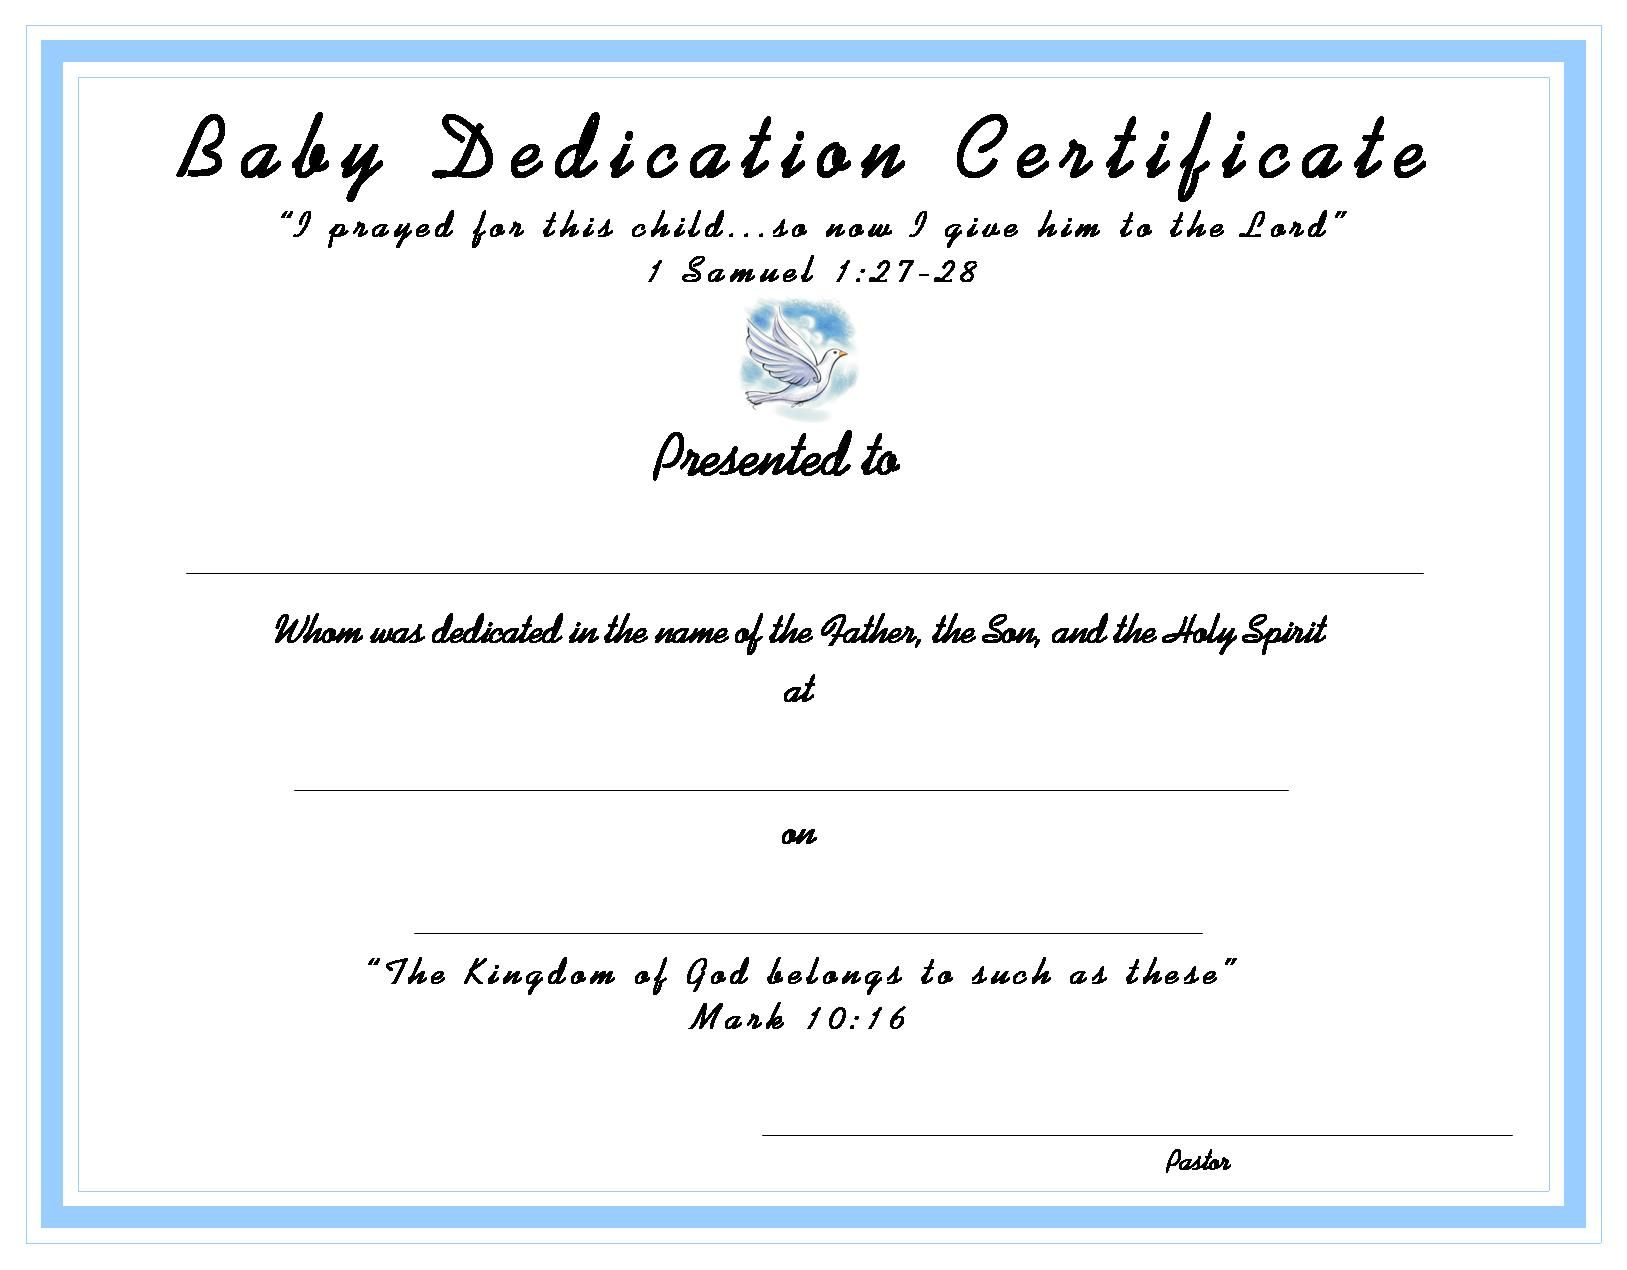 Certificate Template For Kids Free Printable Certificate Templates For  Church, Baptism Certificate Templates, Baby Dedication Certificate Templates,  ...  Baby Certificate Maker